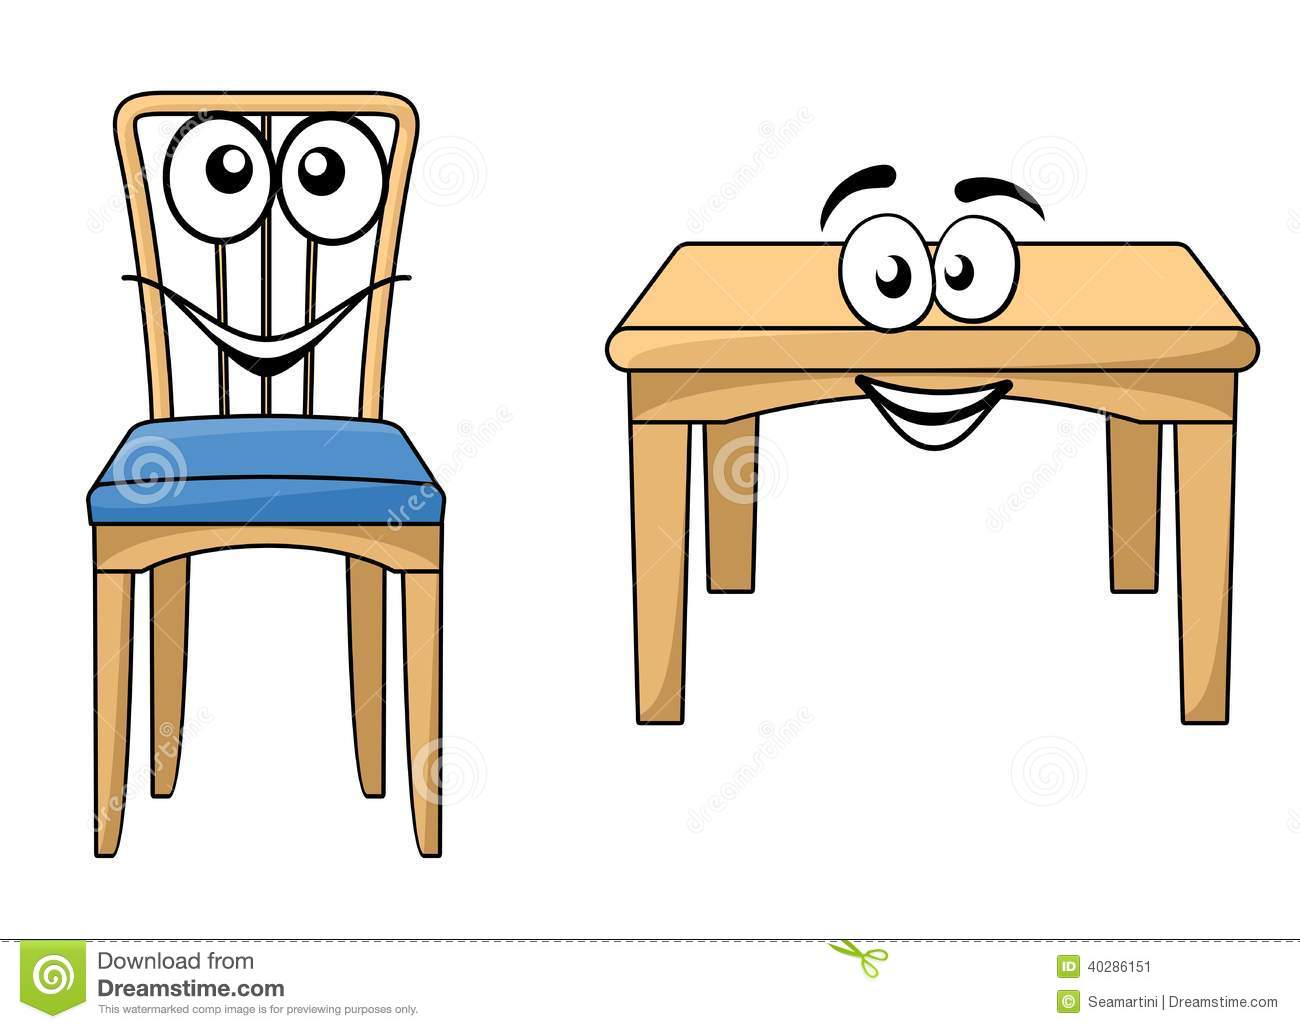 Cartoon kitchen table - Dining Table Cartoon Jpg 1300x1029 Cartoon Kitchen Table